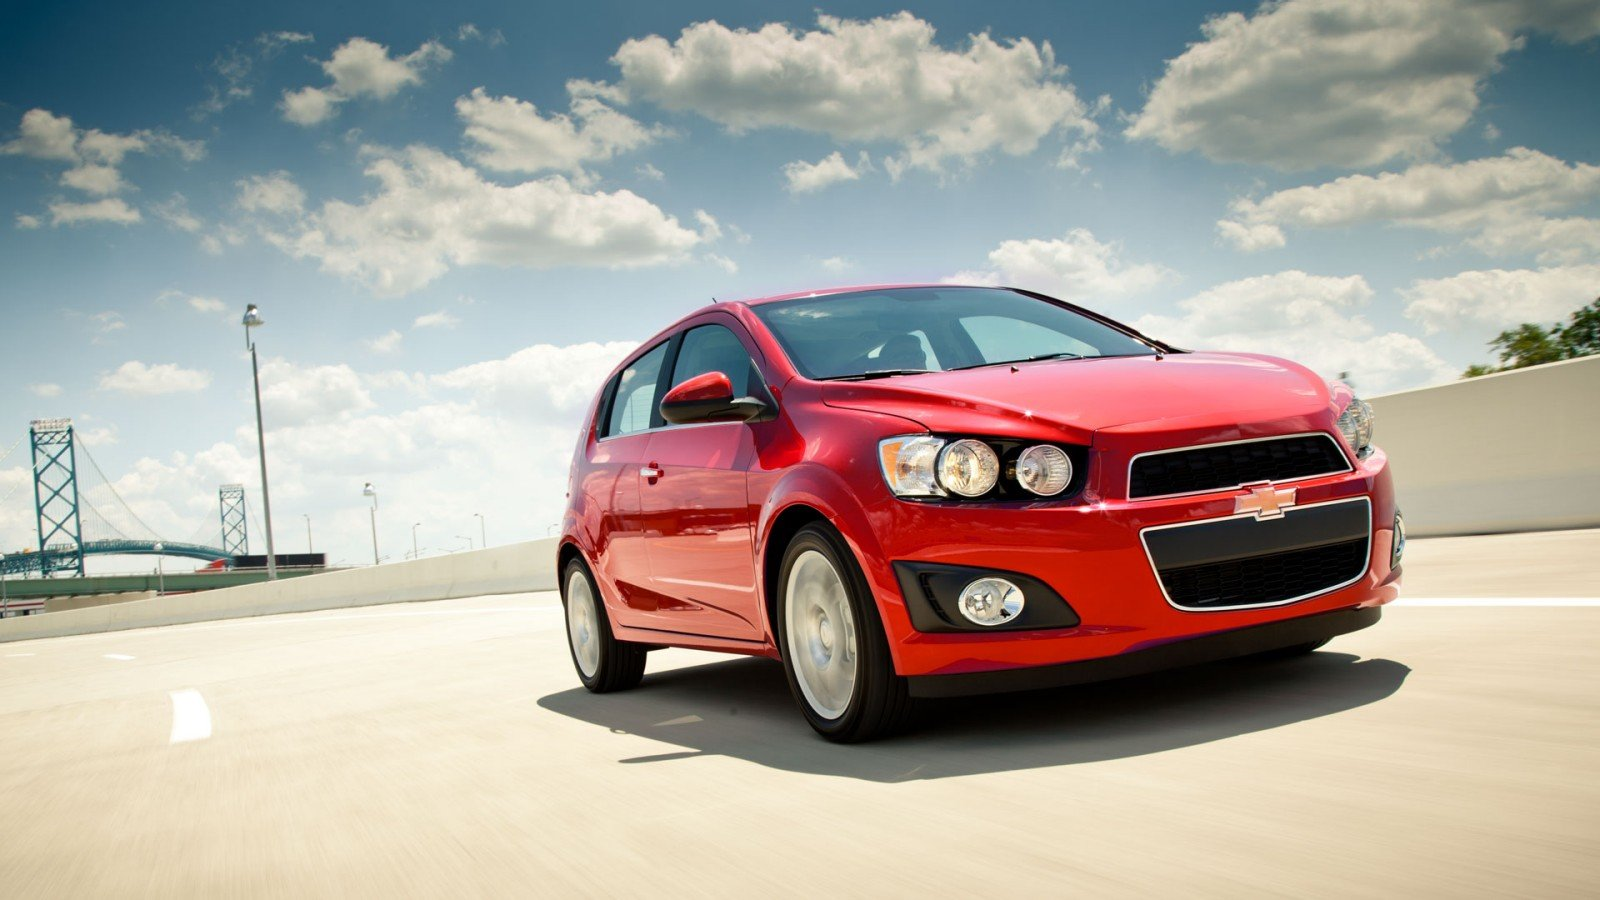 Chevrolet Sonic Owners Manual: Engine Oil